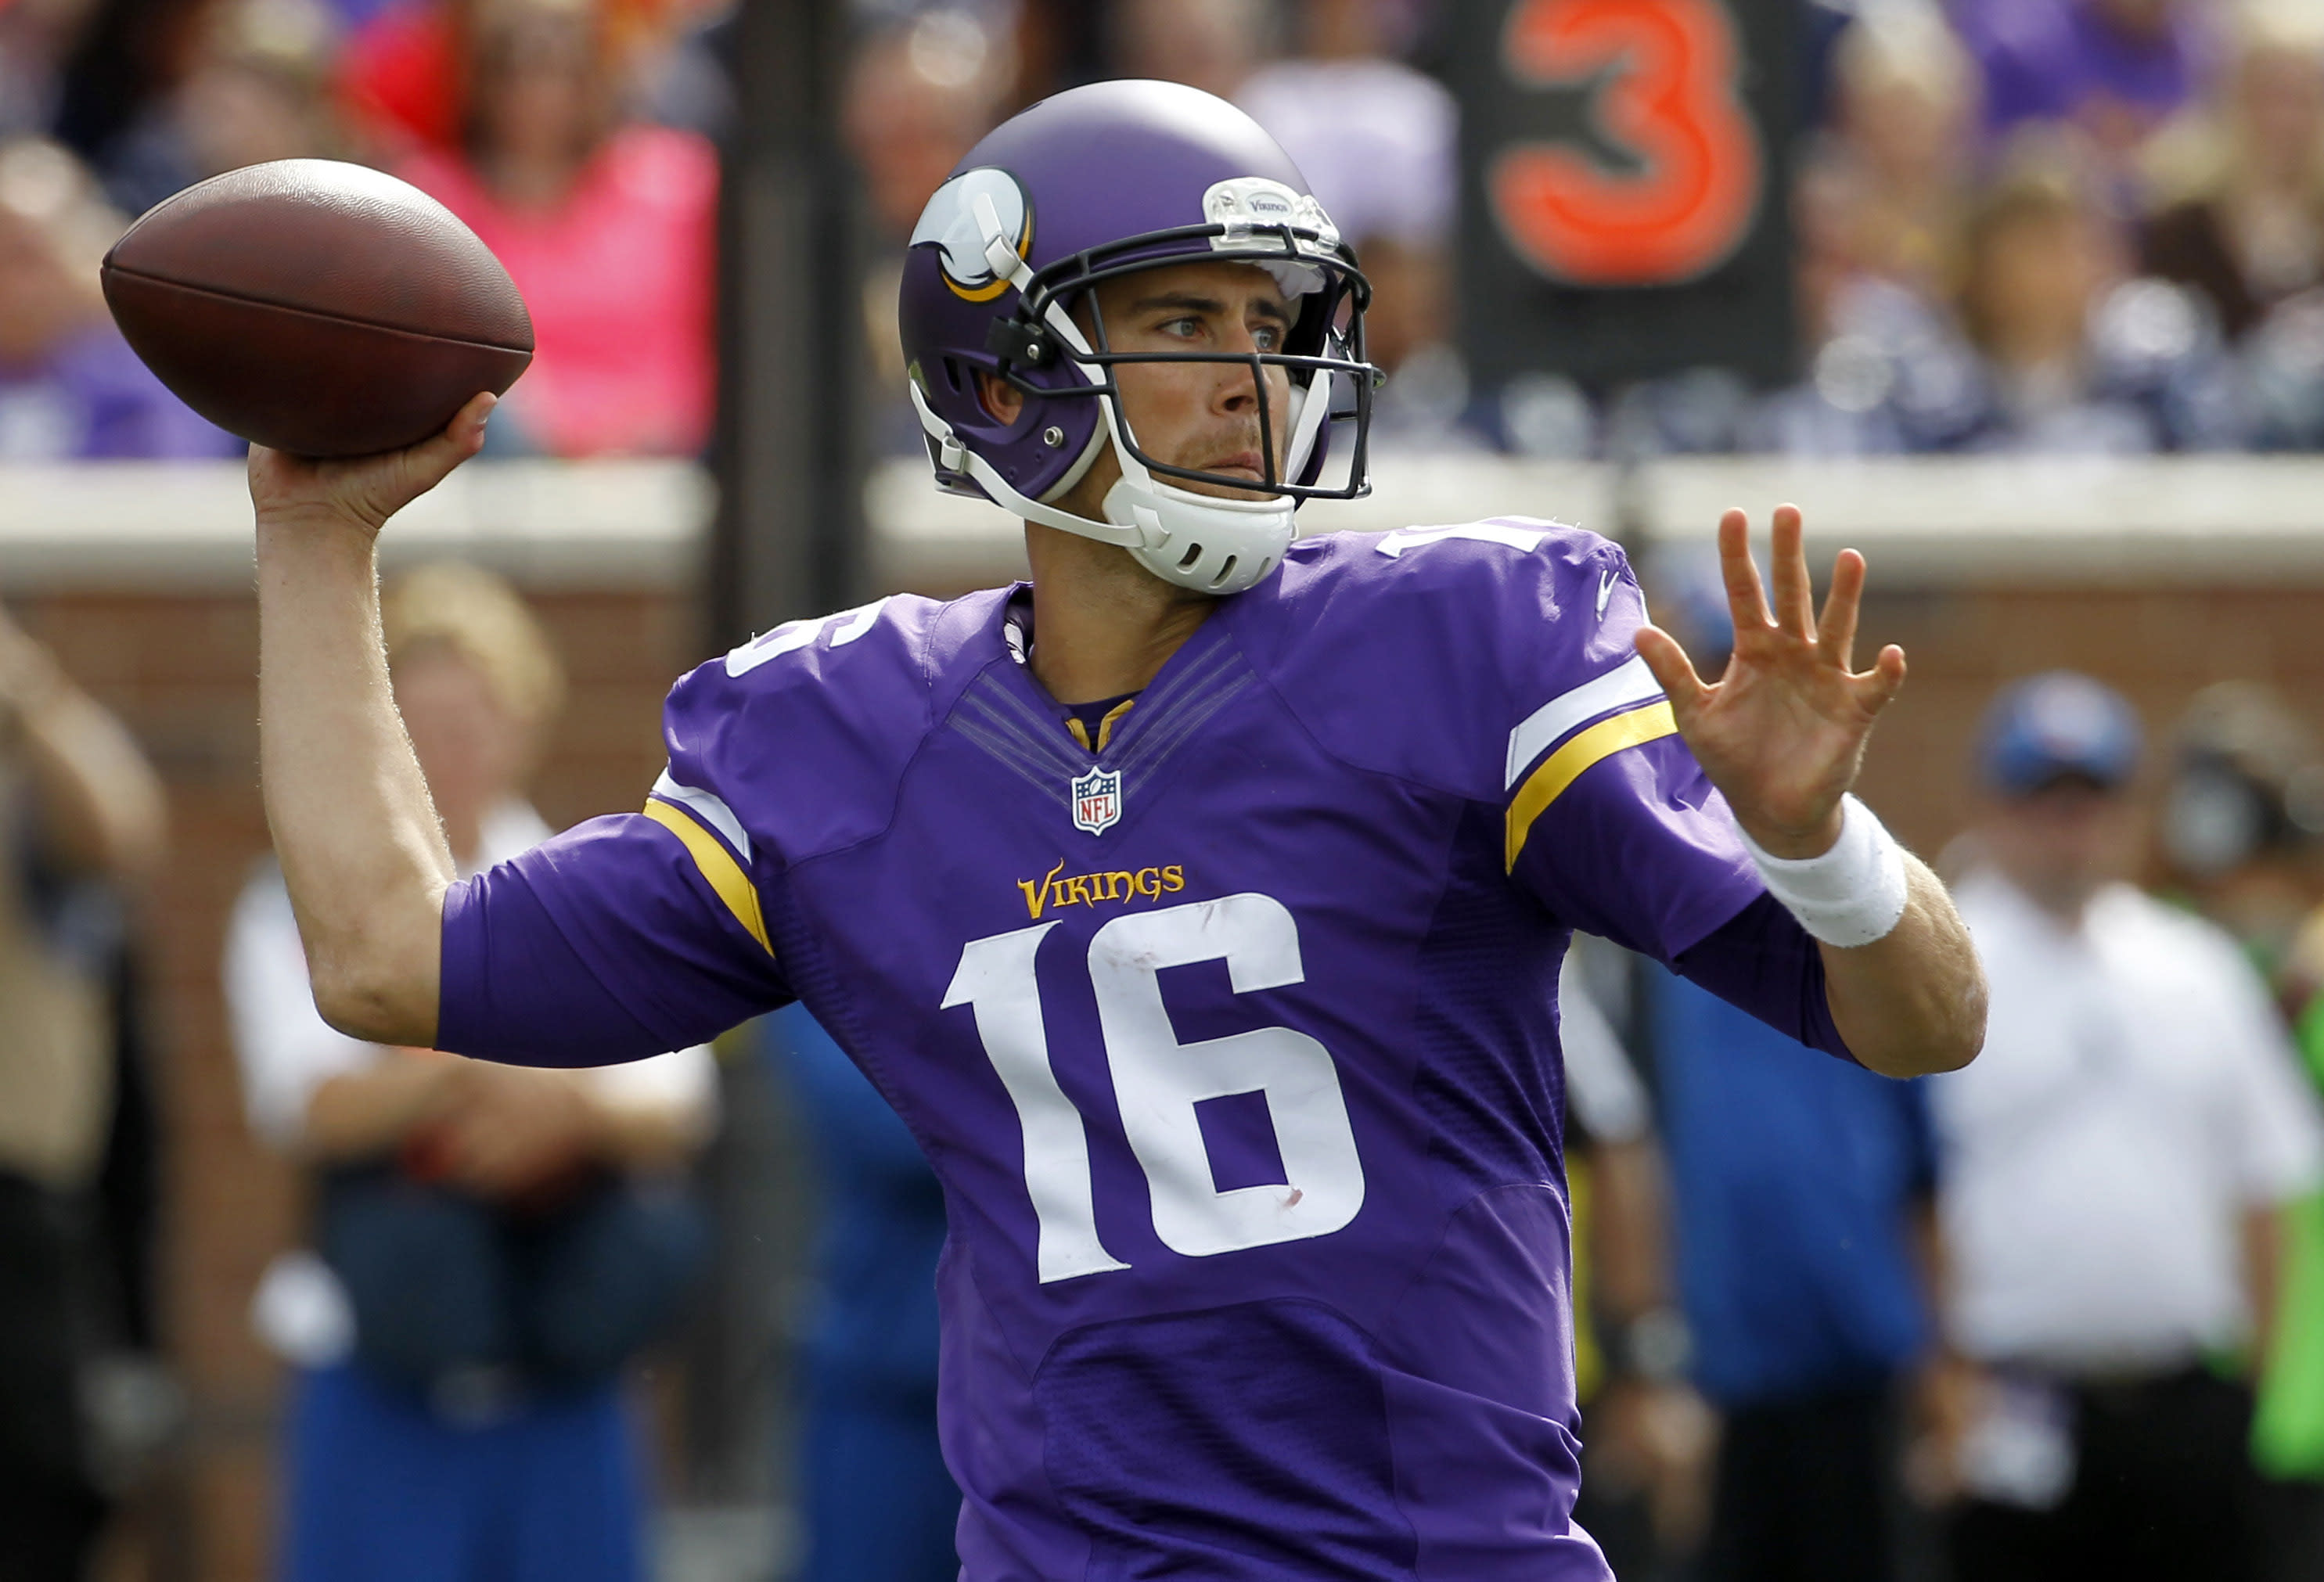 Vikings agree to trade Cassel to Bills